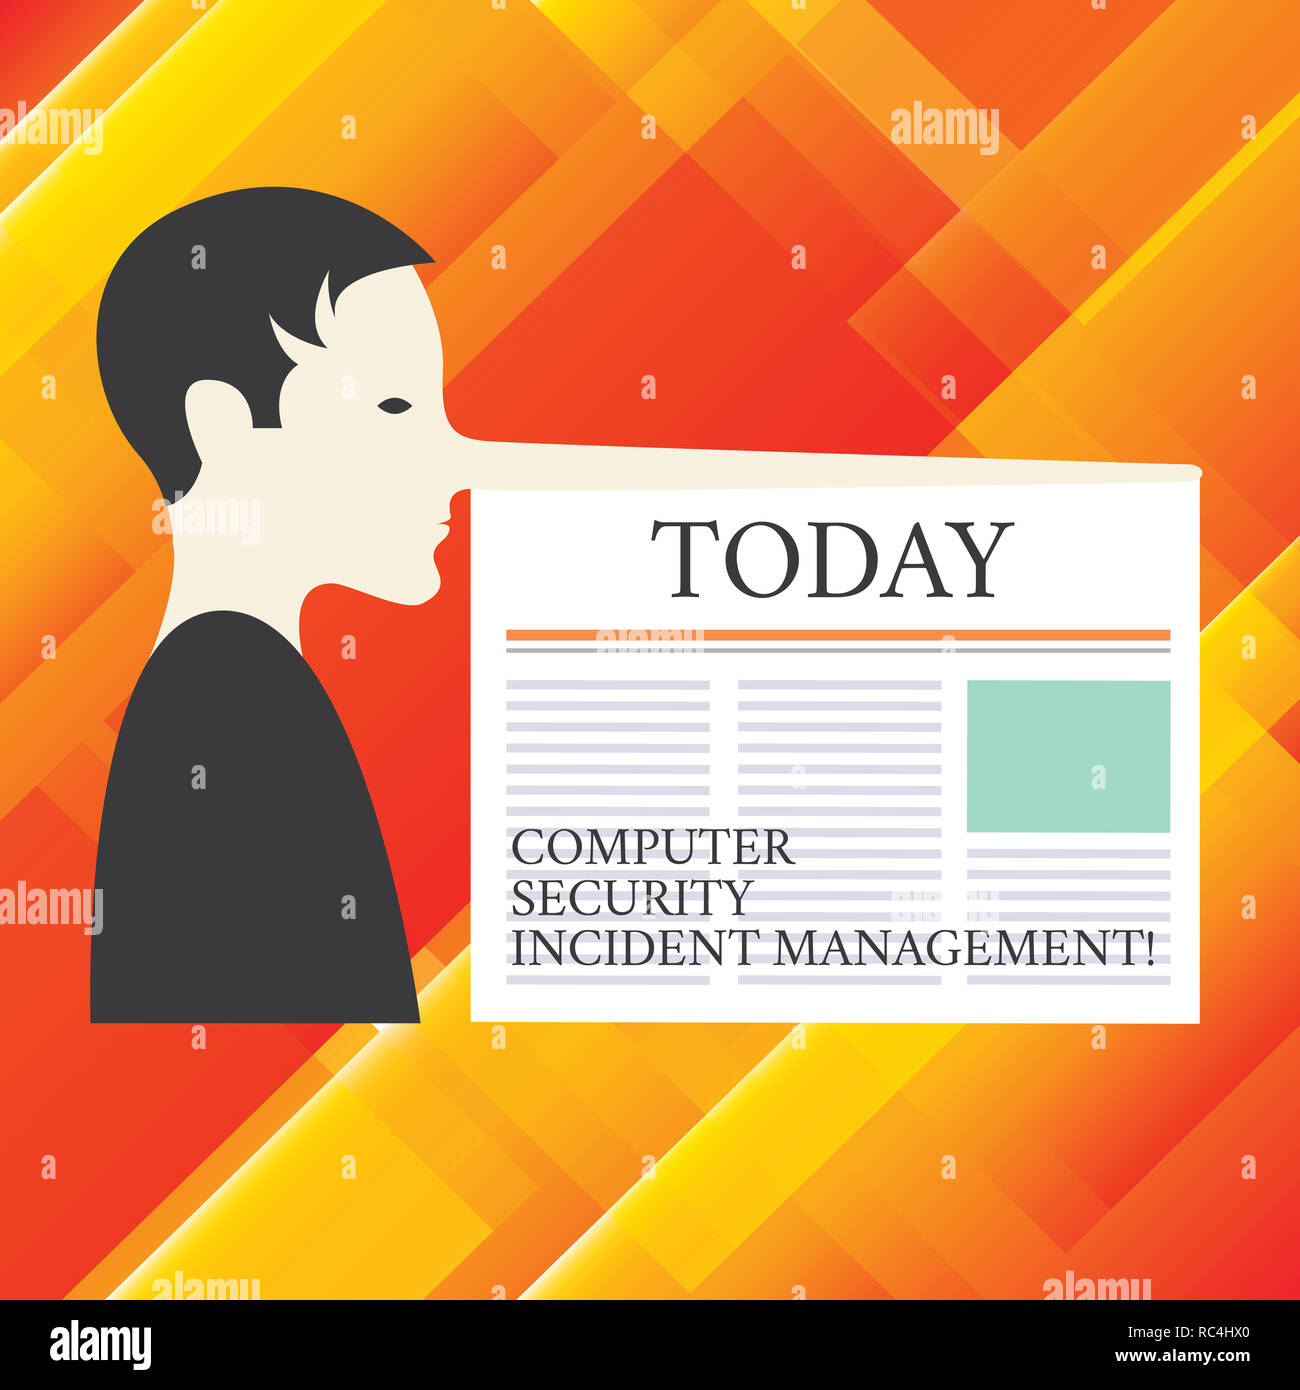 Writing note showing Computer Security Incident Management. Business photo showcasing Safe cyber technology analysisaging Man with a Very Long Nose li - Stock Image